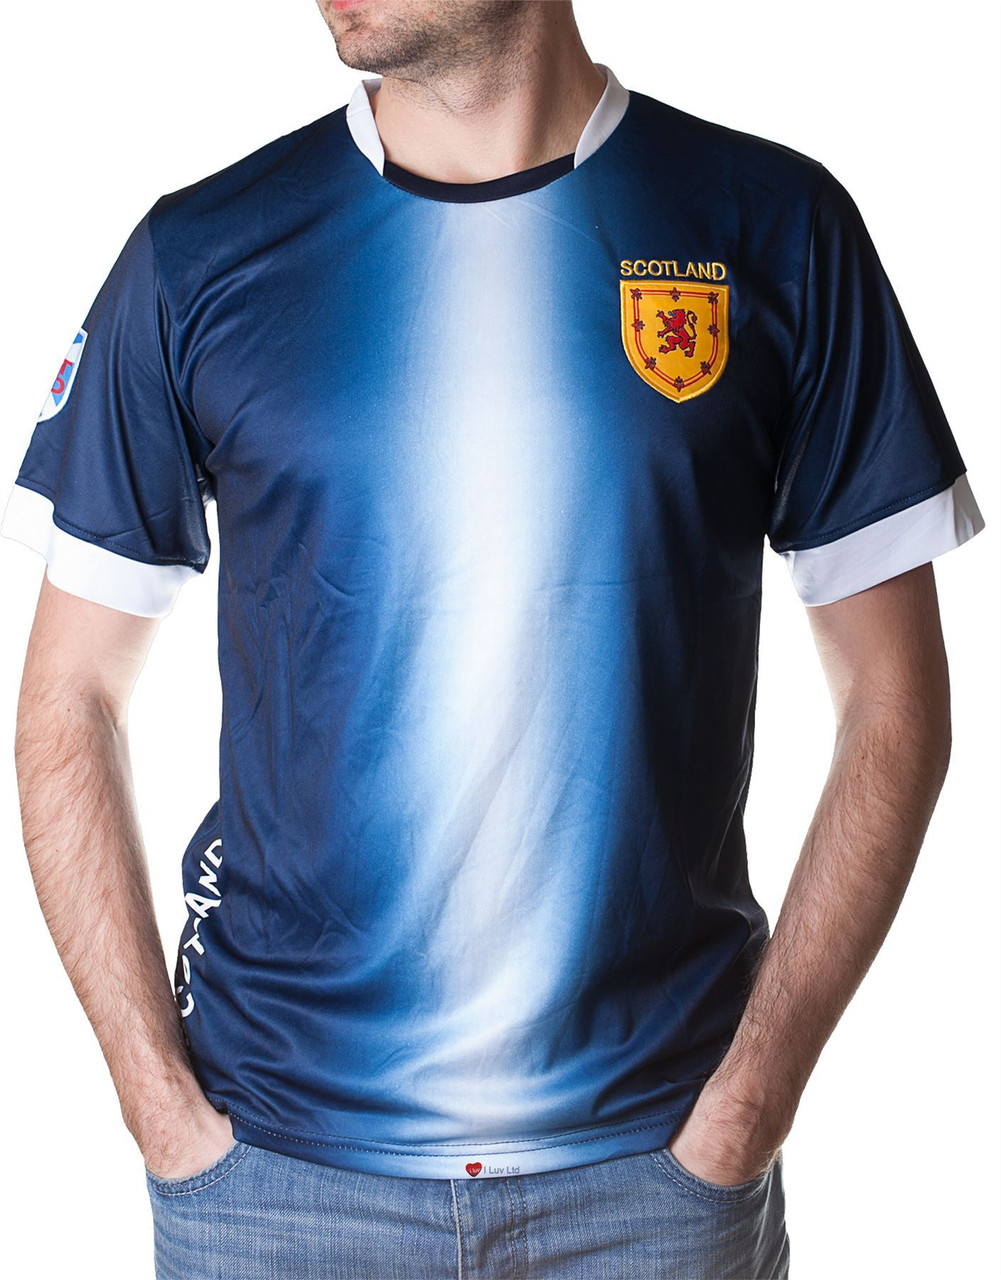 5c27faeb24c4 Adults football Jersey Navy White - ILuvSports.co.uk